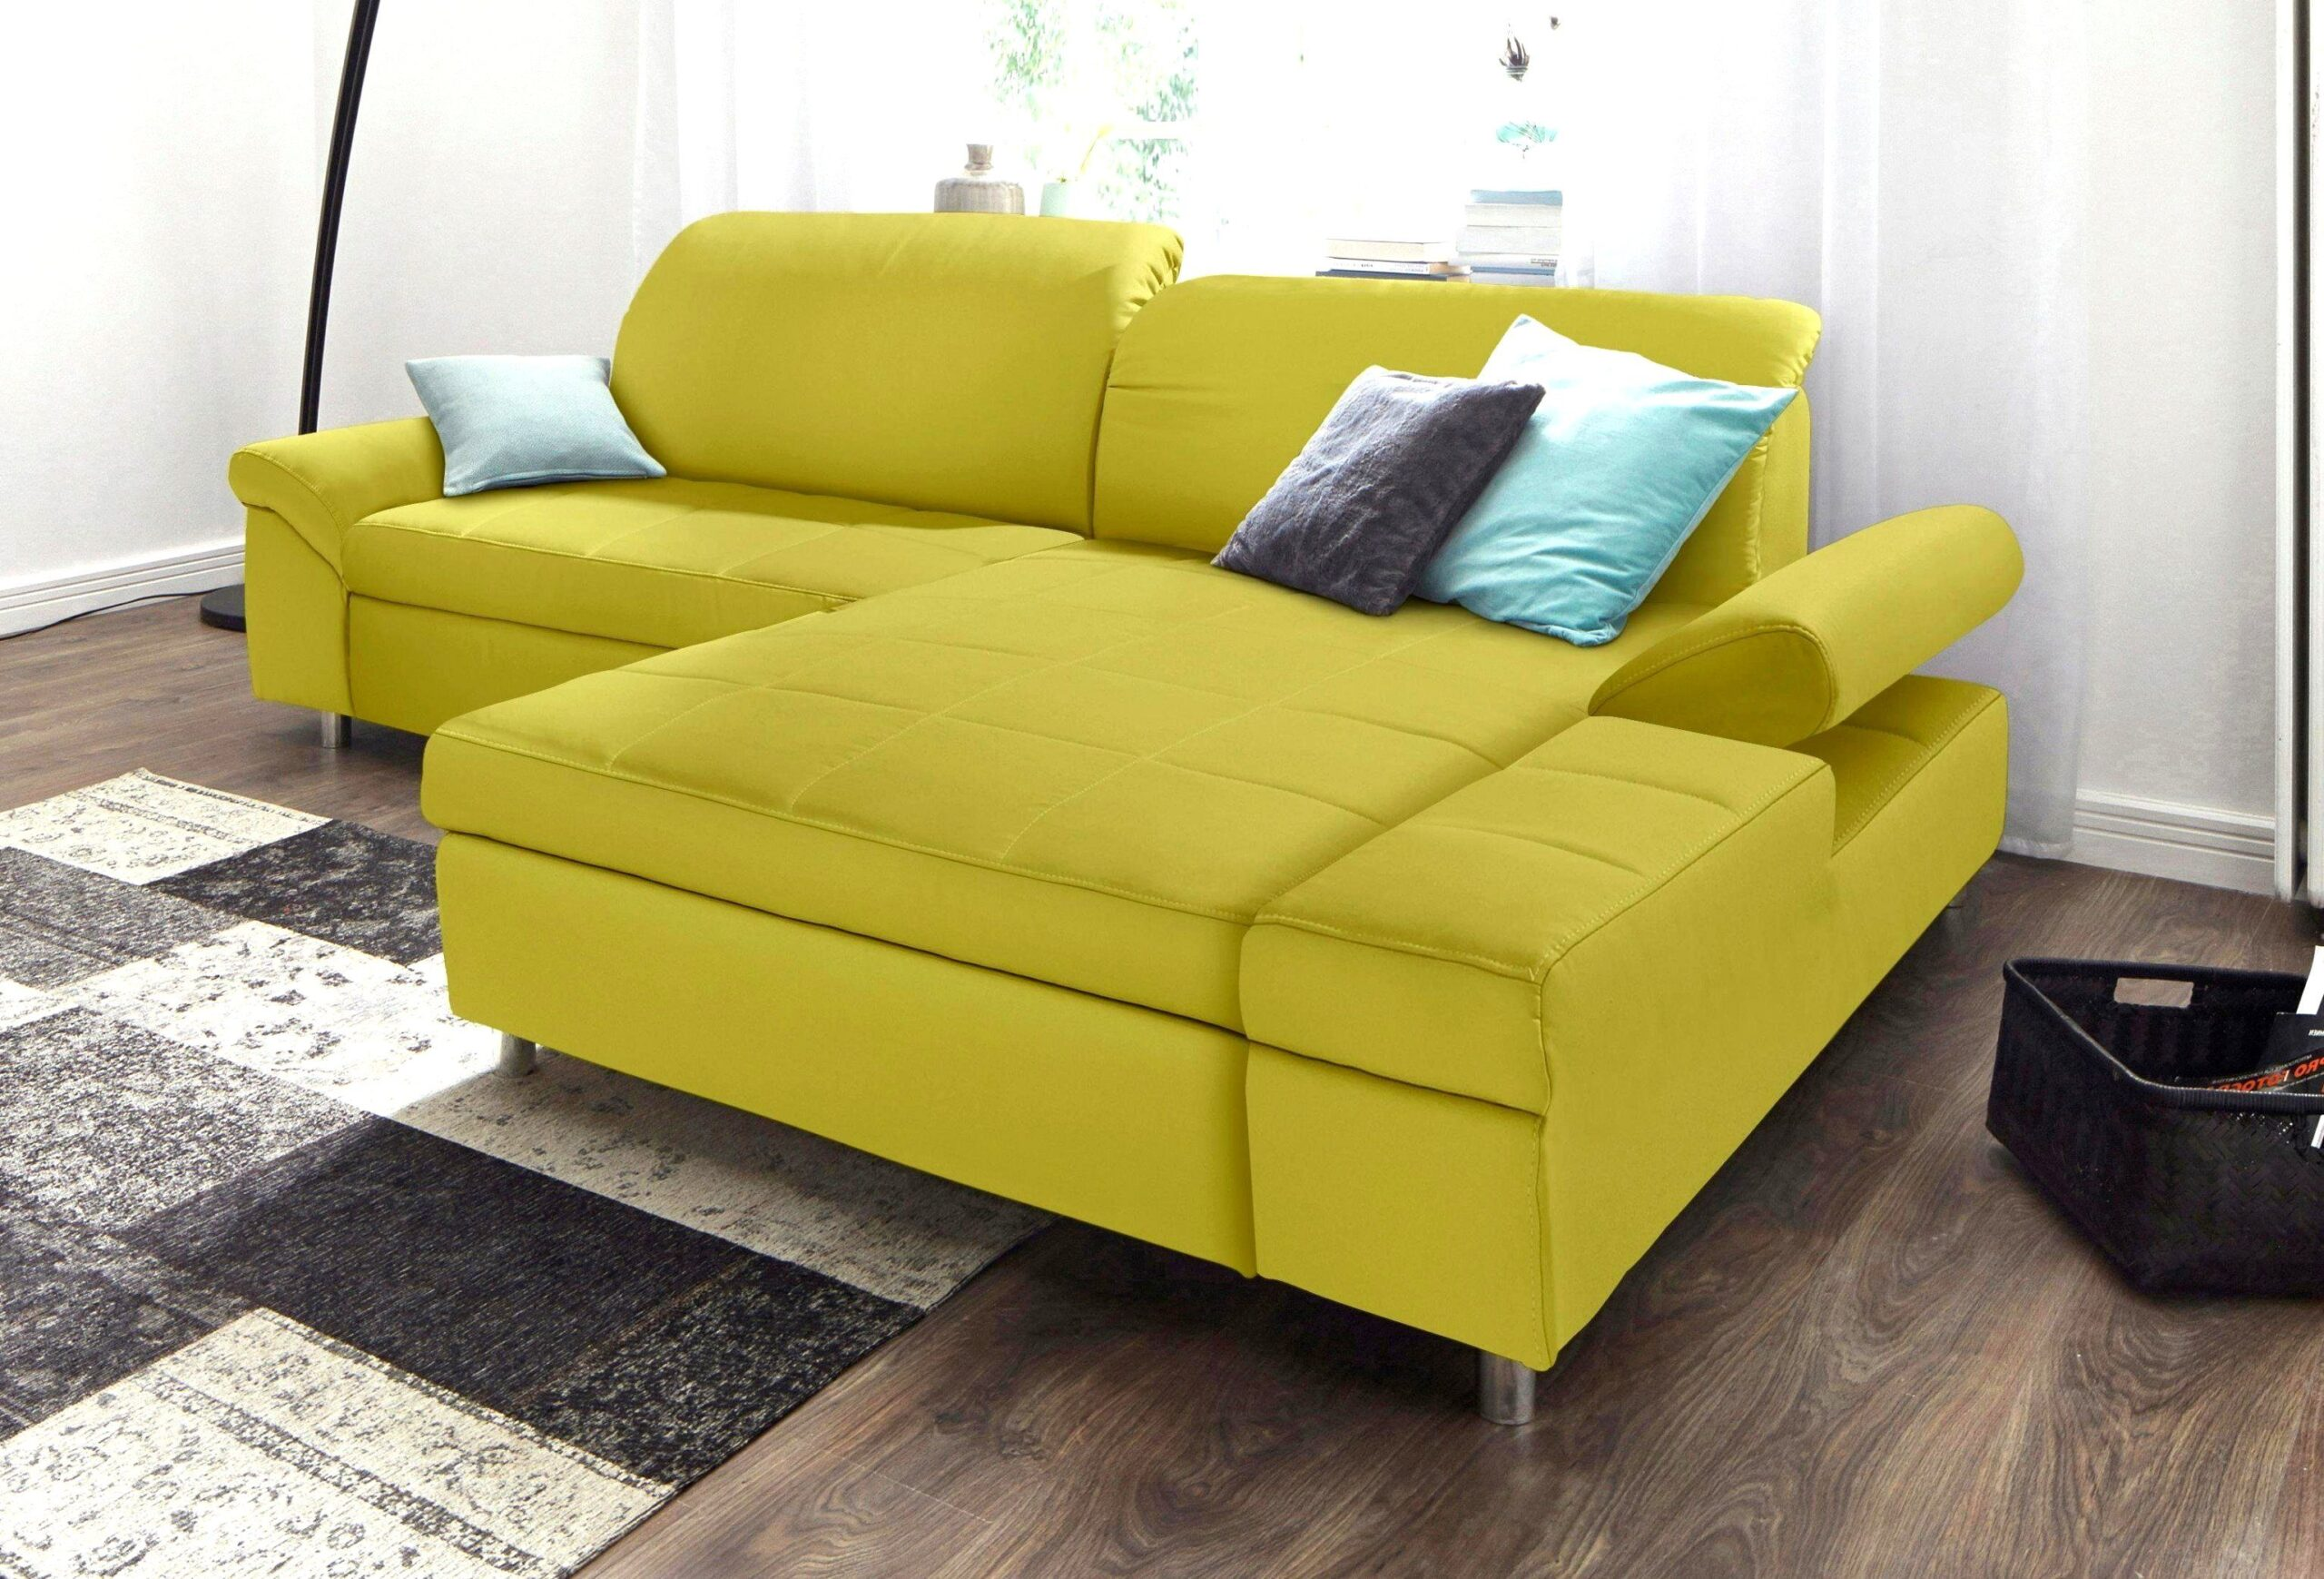 Full Size of 29 Best Of Extra Langes Sofa Mit Chaiselongue Patchwork Cassina Schlaffunktion Federkern Terassen Landhausstil Eck Ausziehbar Xxxl Tom Tailor L Form 2 Sitzer Sofa Langes Sofa